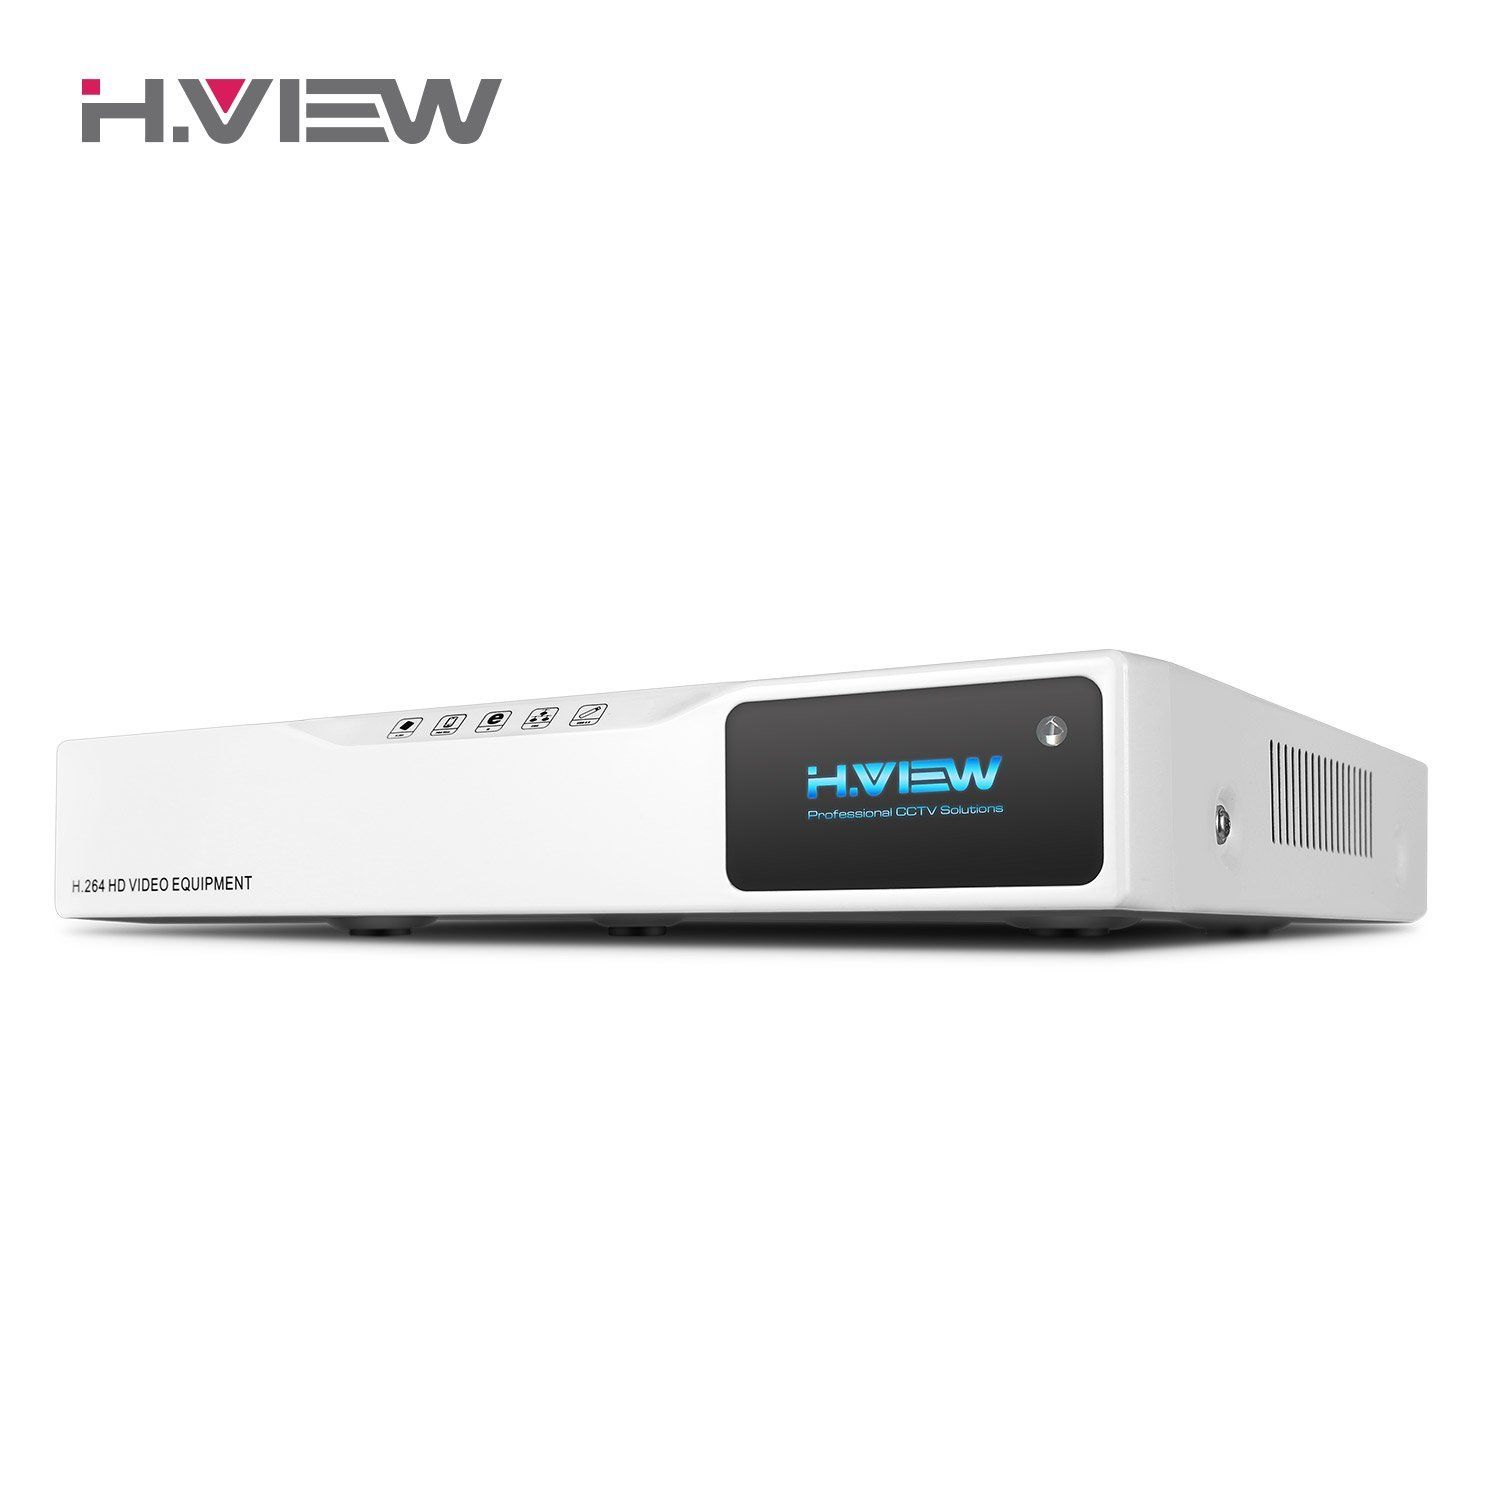 цена на H.VIEW 8CH DVR 1TB AHD DVR Network Video Recorder 1080N H.264 Digital Camera Recorder Surveillance Support 1080P AHD Cameras